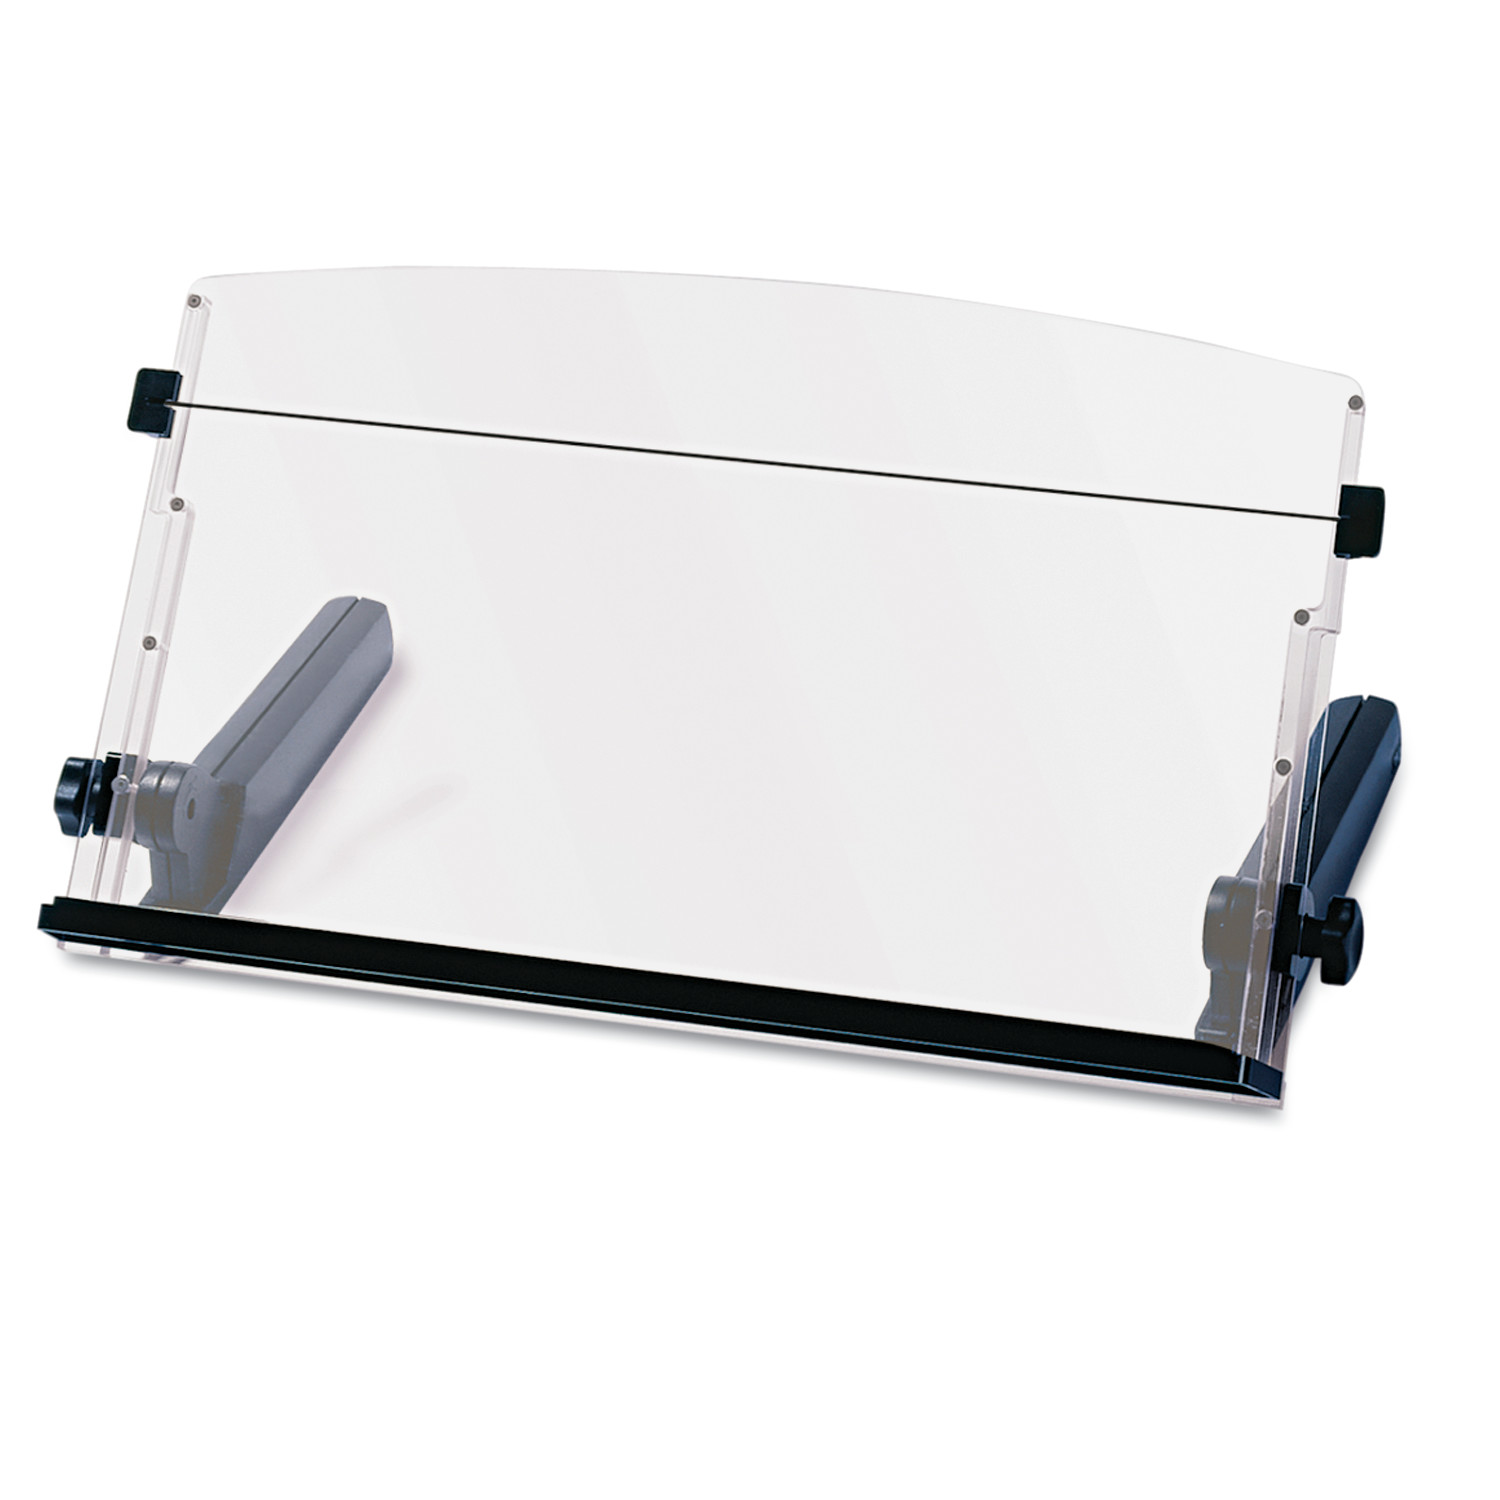 3M In-Line Freestanding Copyholder, Plastic, 300 SHeet Capacity, Black Clear by 3M/COMMERCIAL TAPE DIV.